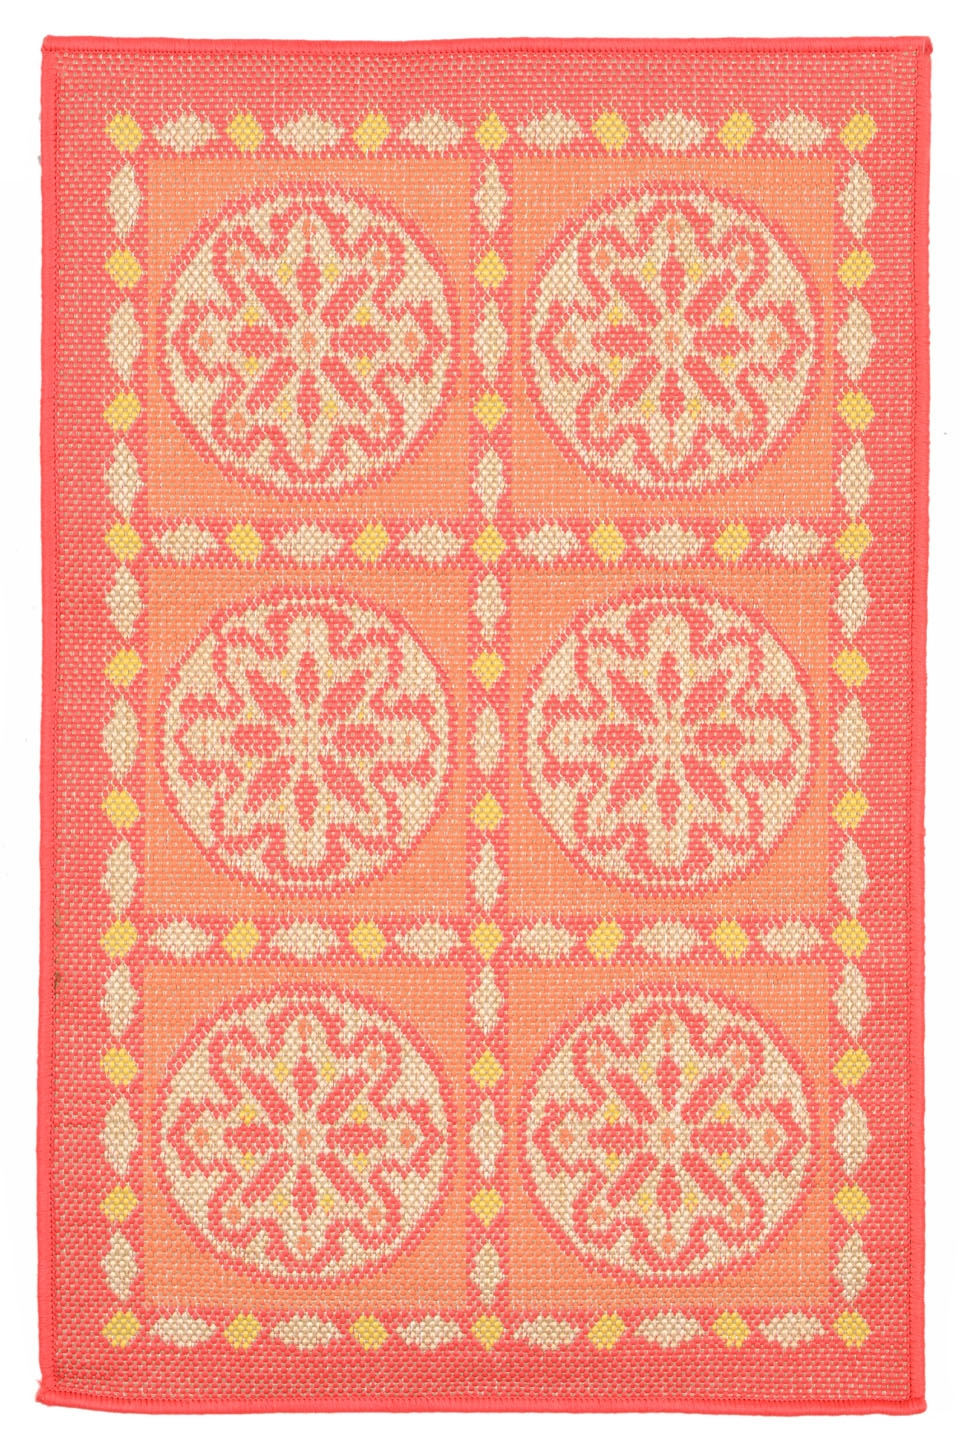 Transocean playa 1362 74 tile warm rug for Warm rugs